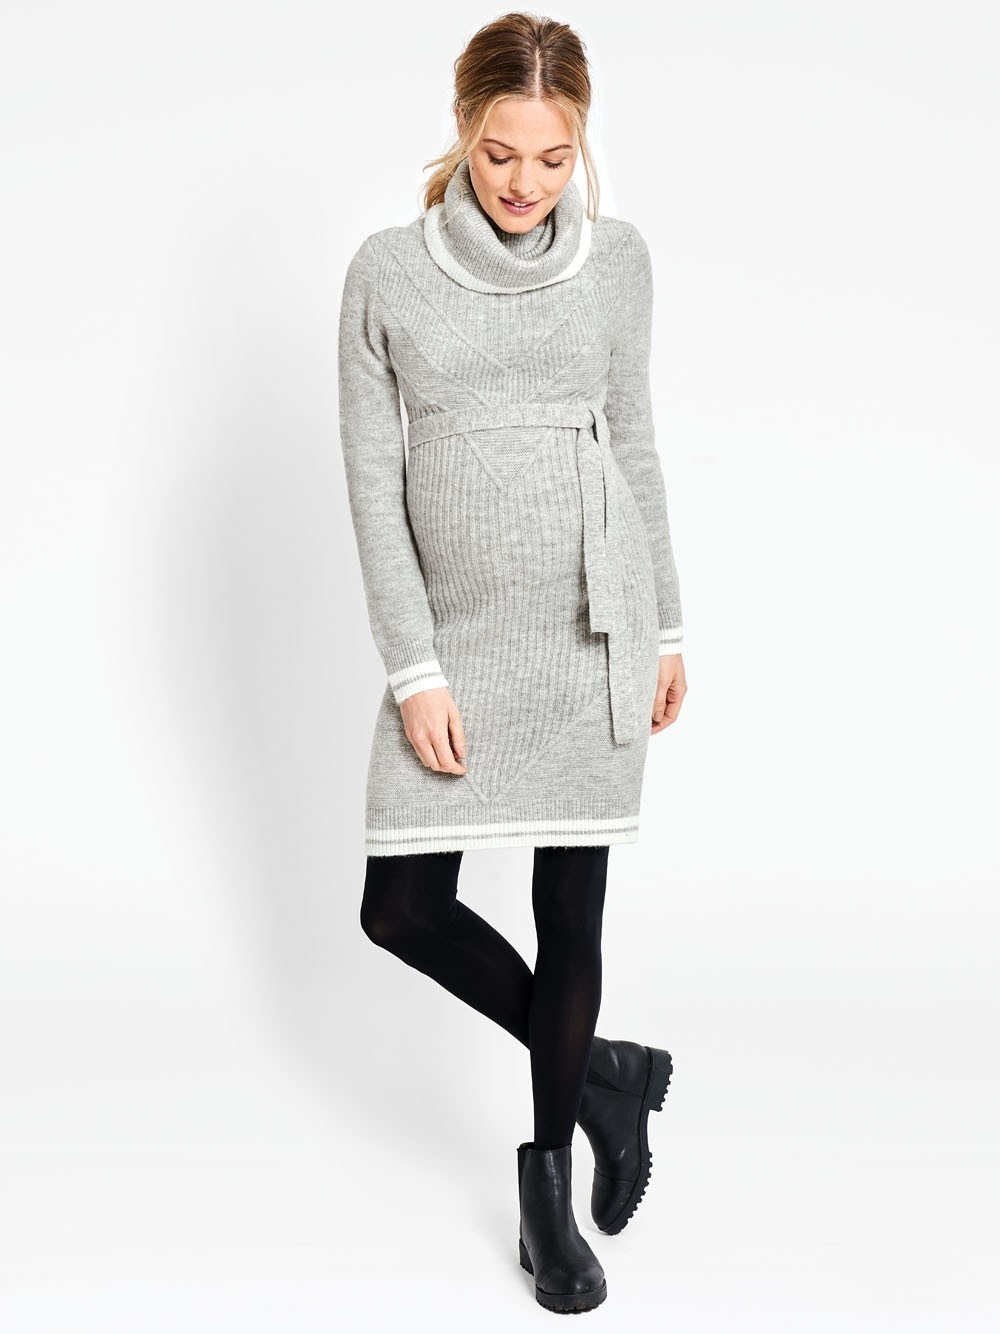 Marl Gray Roll Neck Maternity Sweater Dress